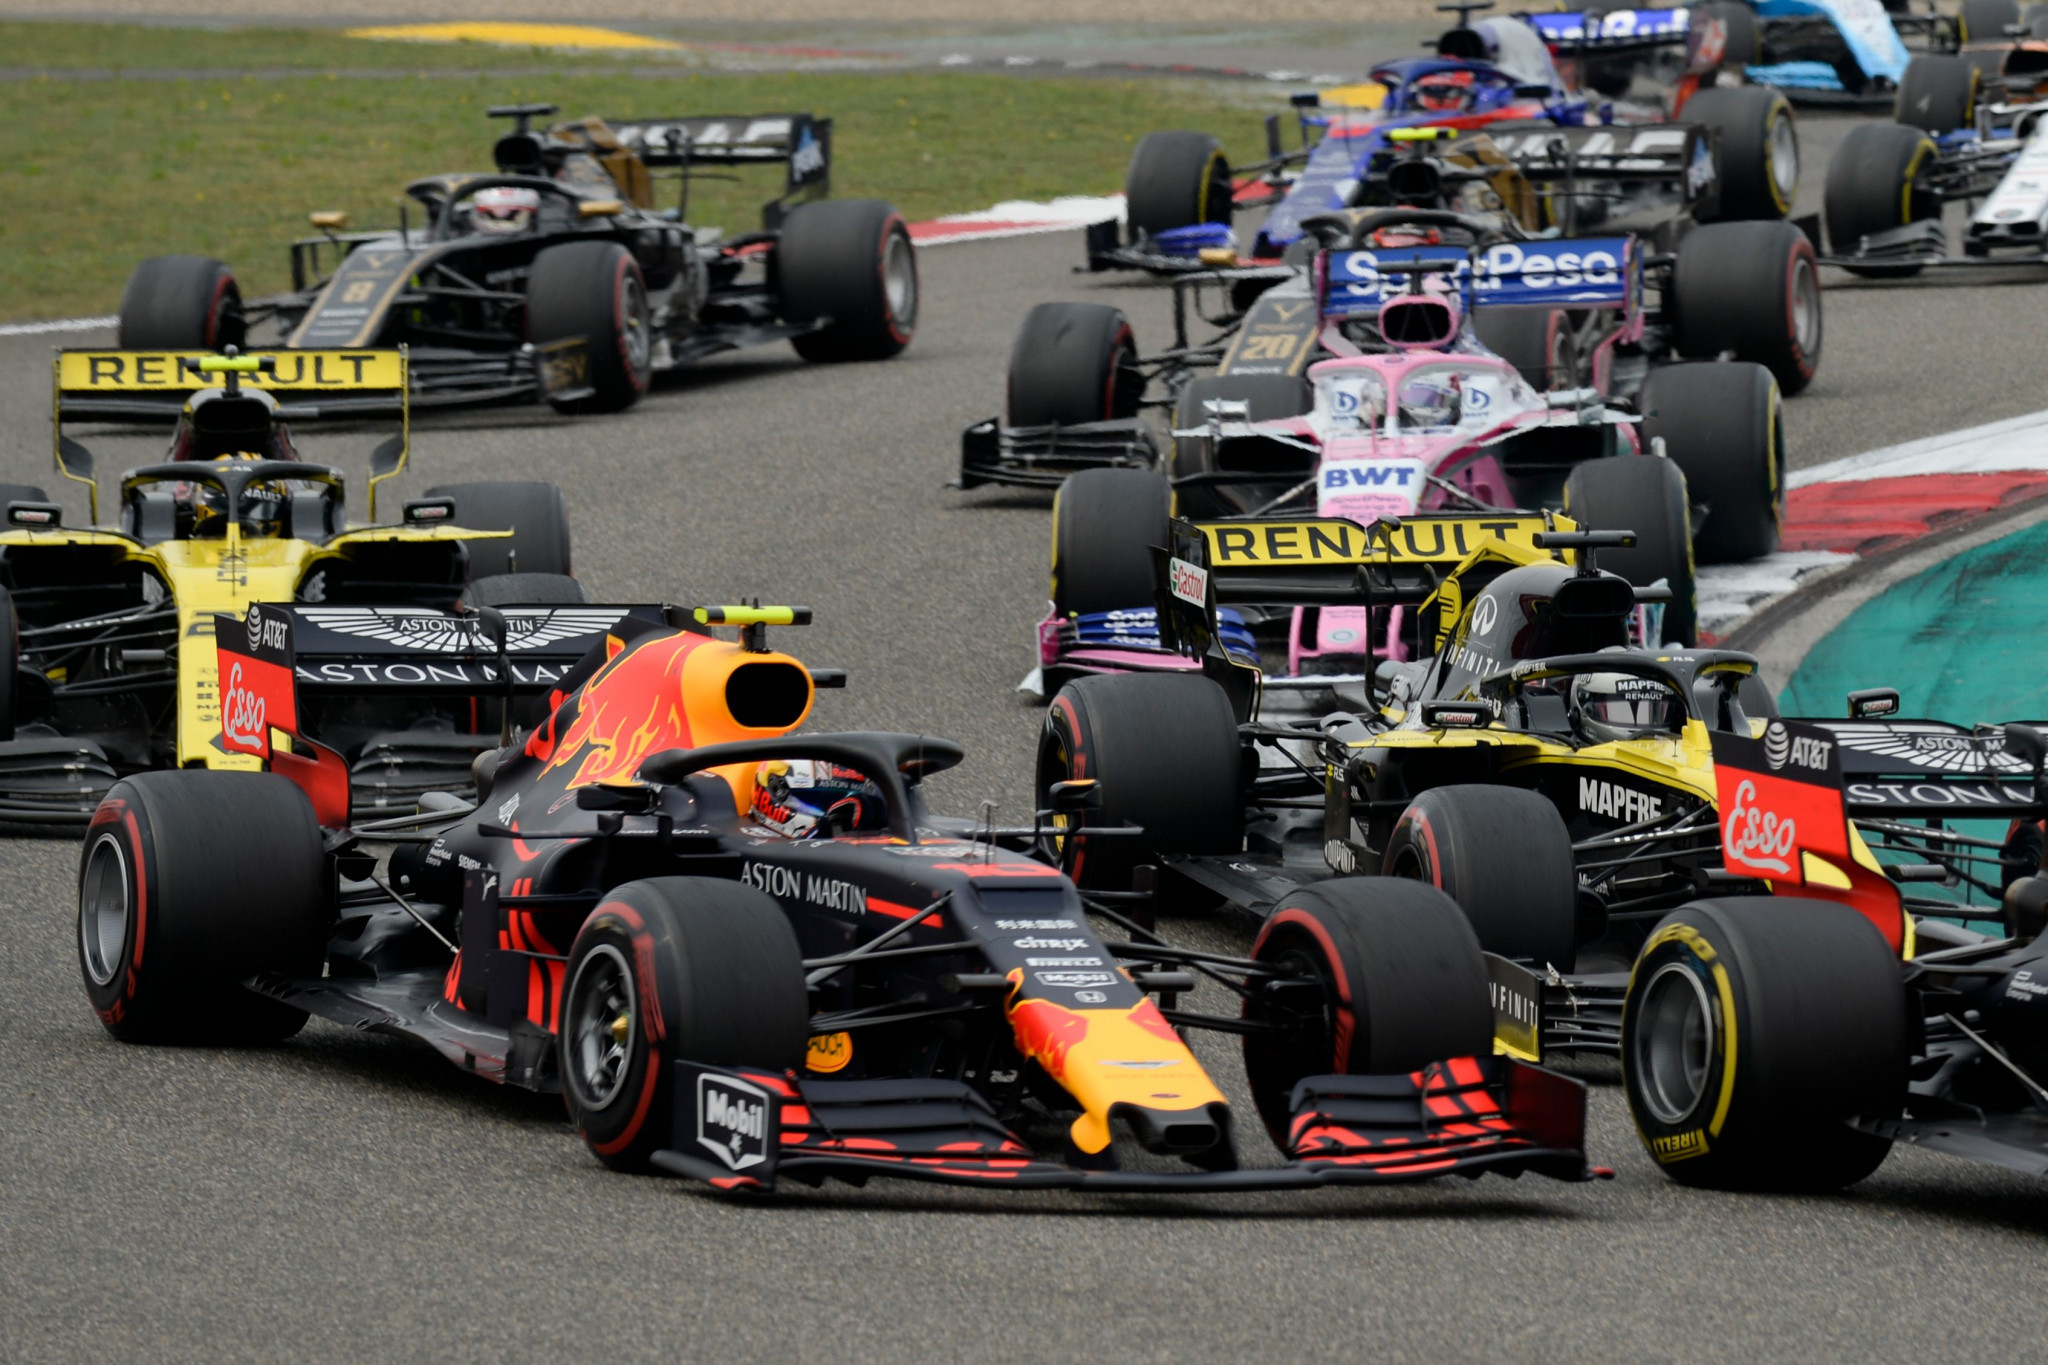 Formula One season poised to start with two races in Austria